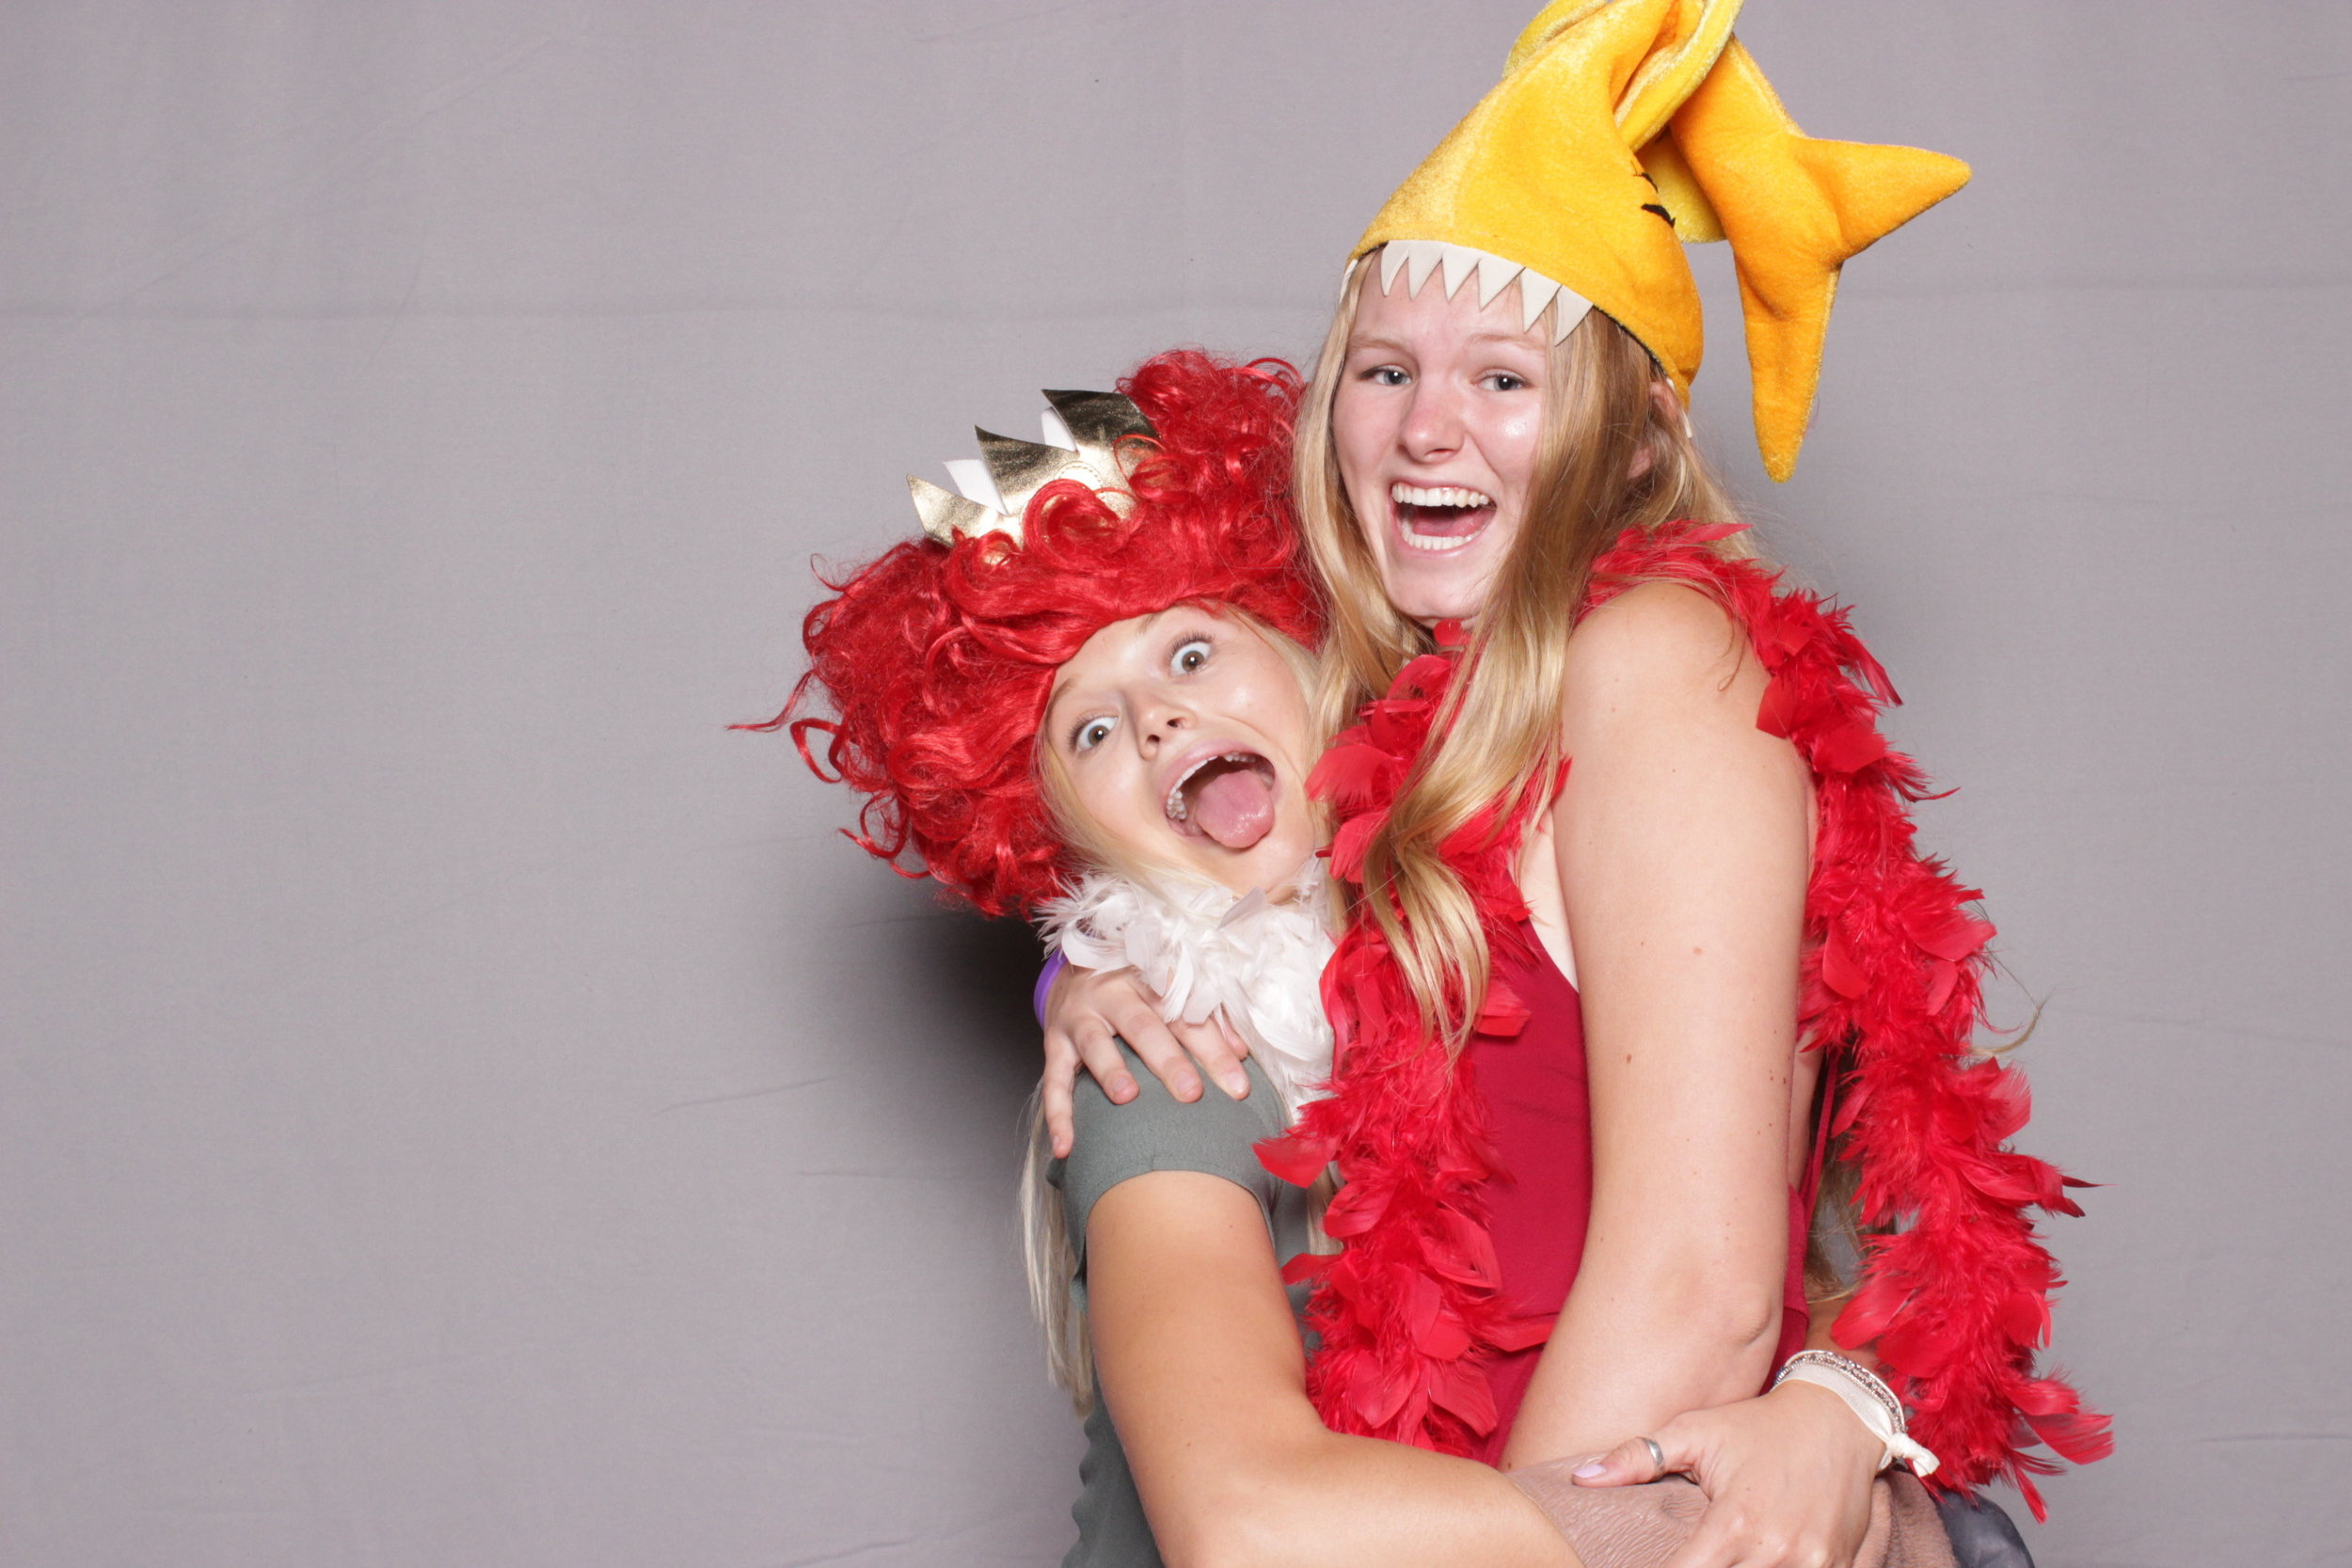 photo-booth-rental-chico-california-shark-hat